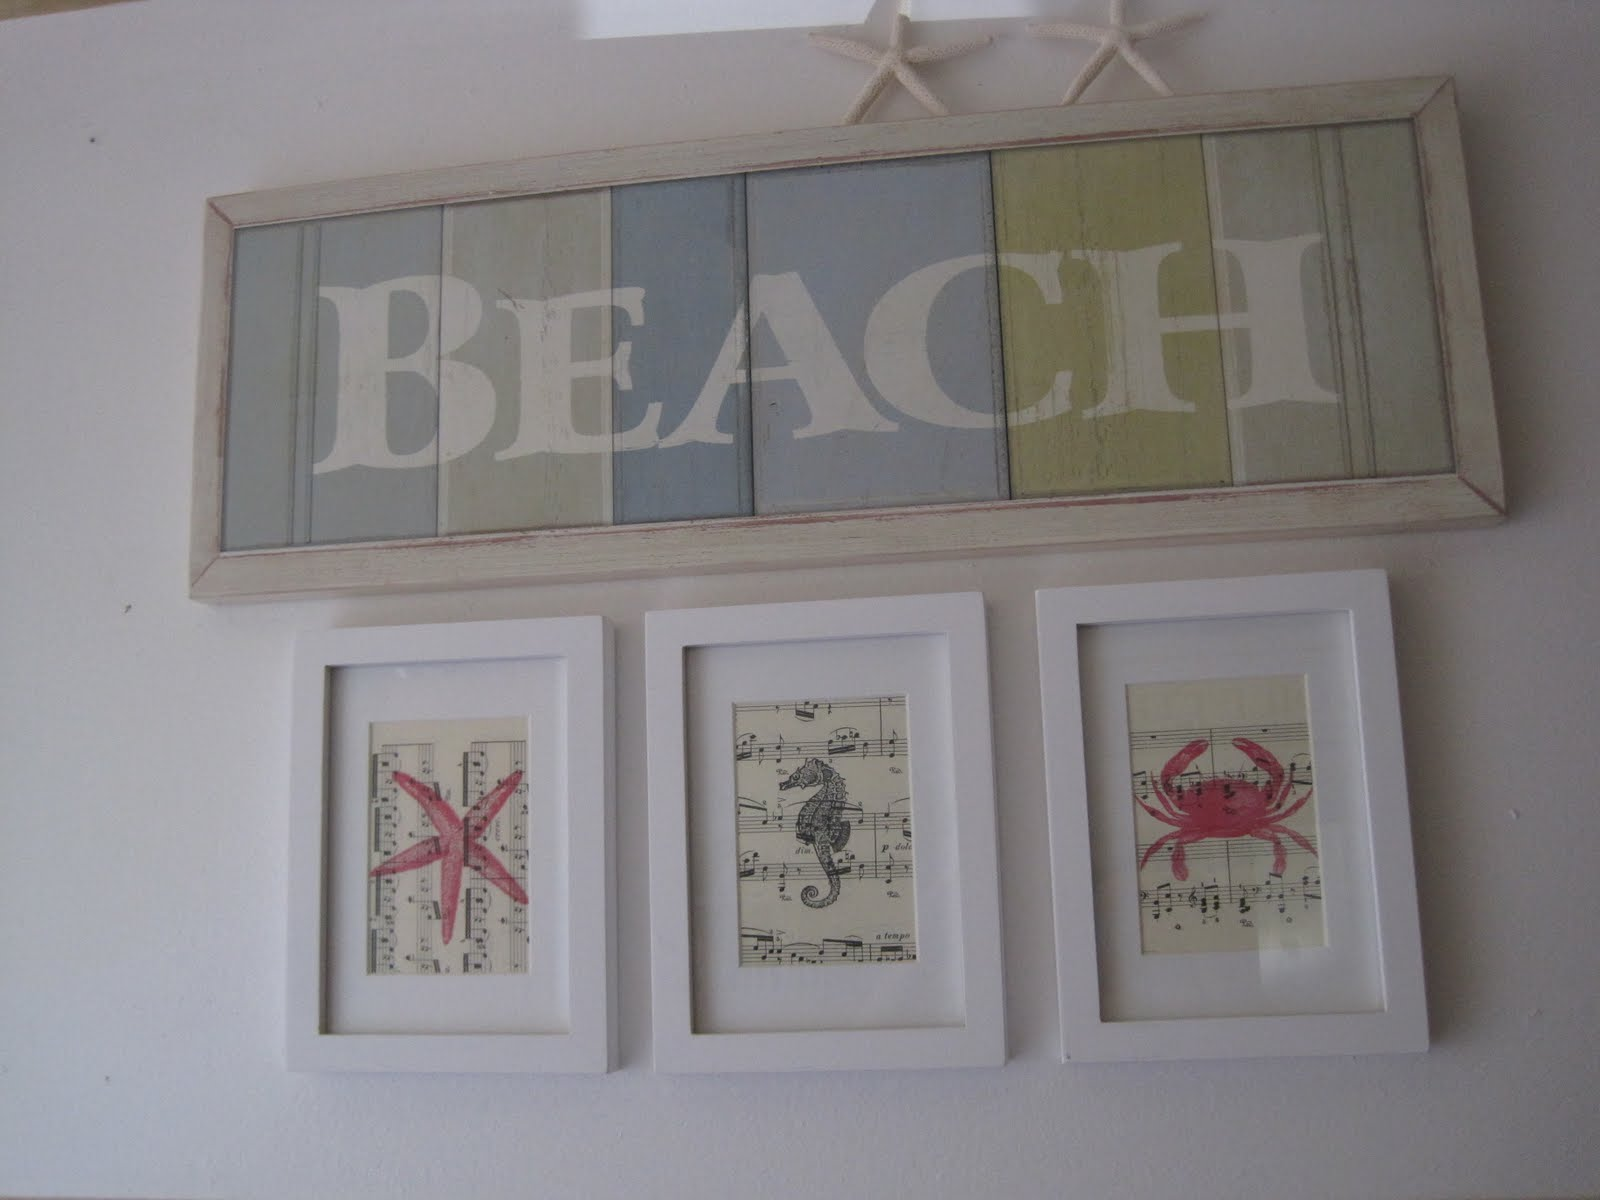 Beach Creatures Wall Art Okio B Designs